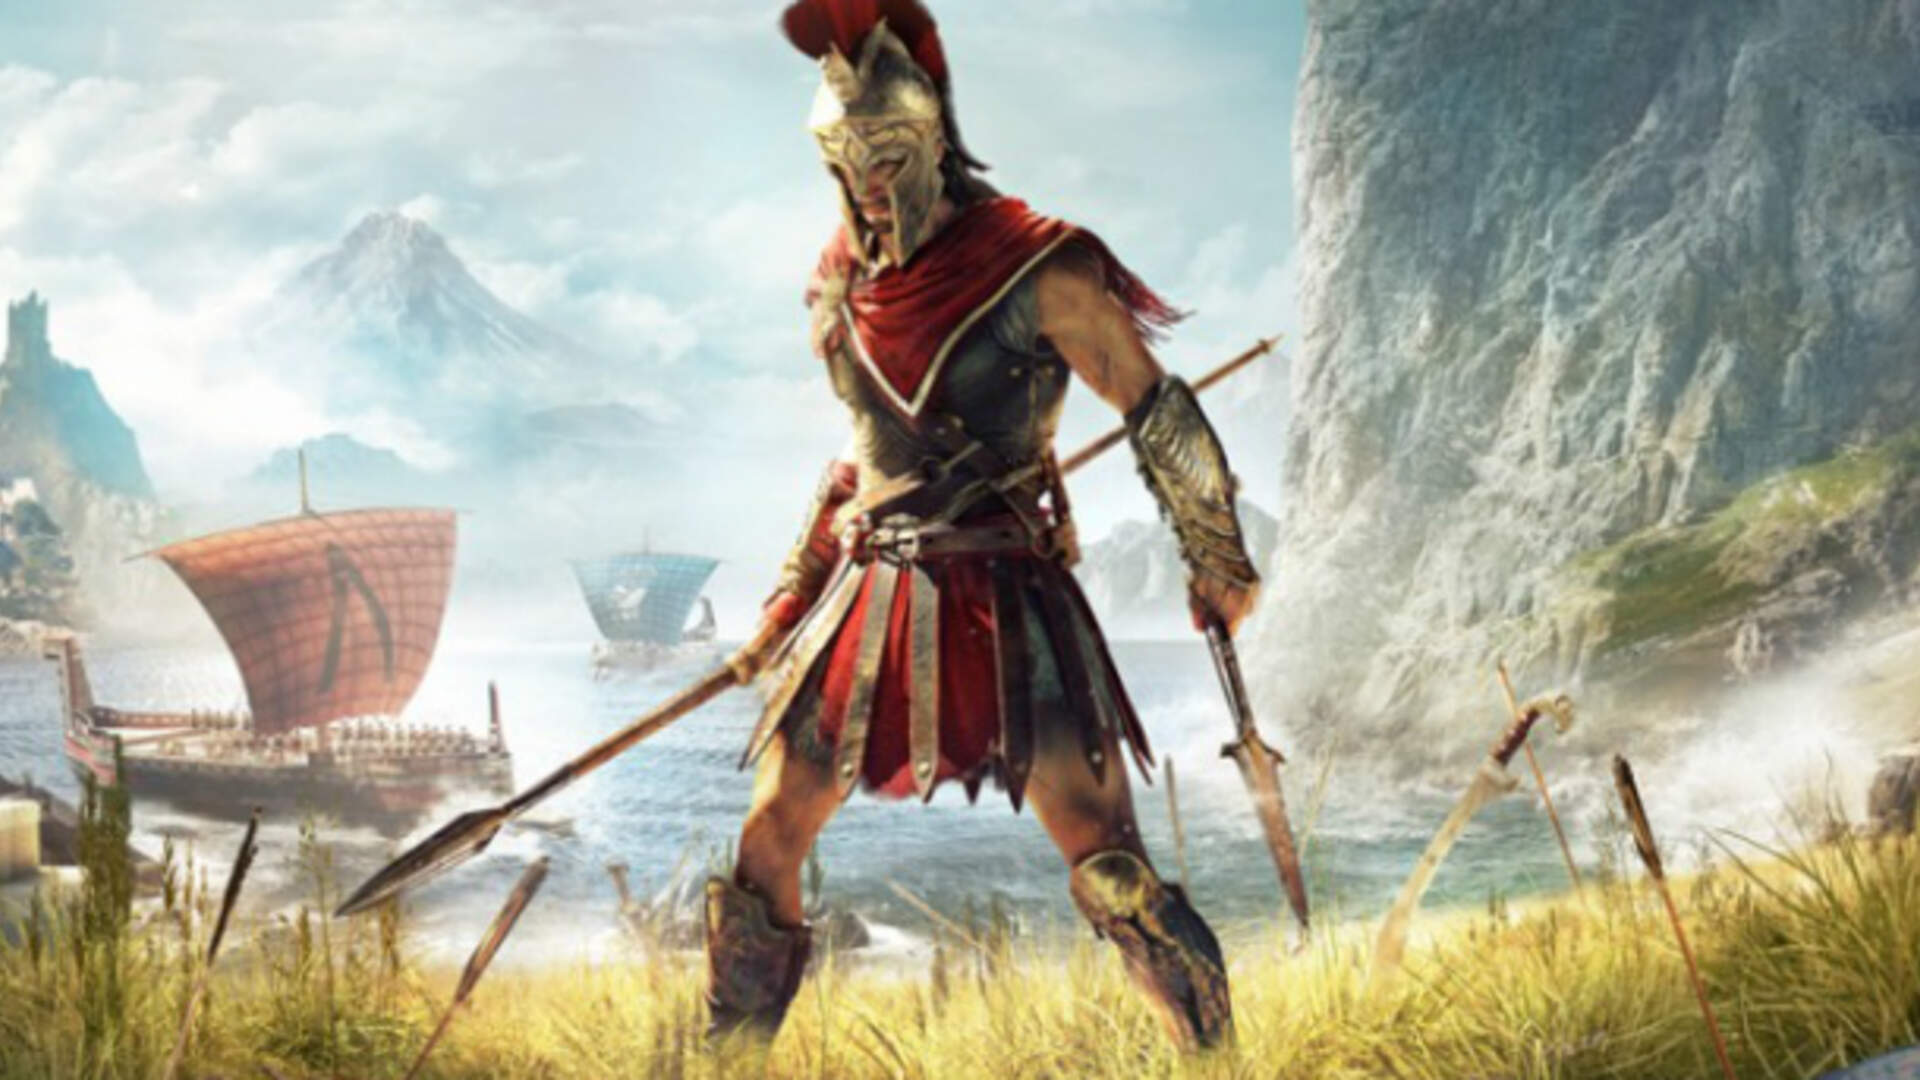 Here S 16 Minutes Of Assassin S Creed Odyssey 4k Gameplay Usgamer